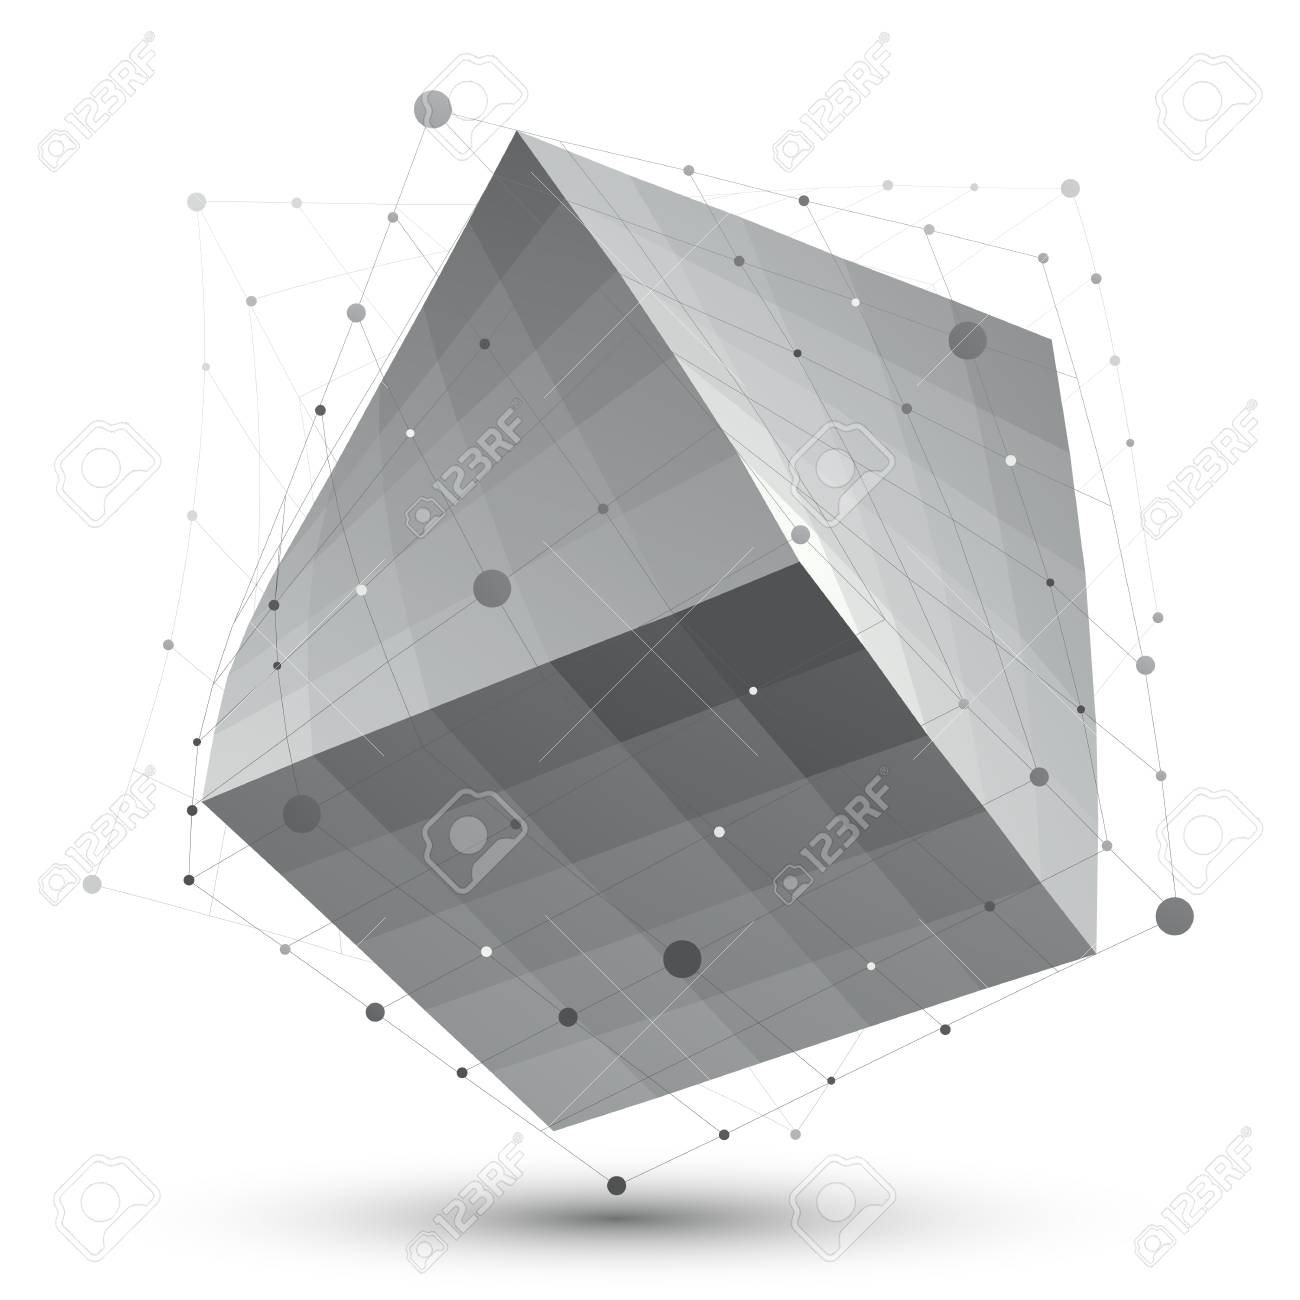 Distorted 3D abstract object with lines and dots isolated on white background, unusual spatial cube. Stock Vector - 29717362